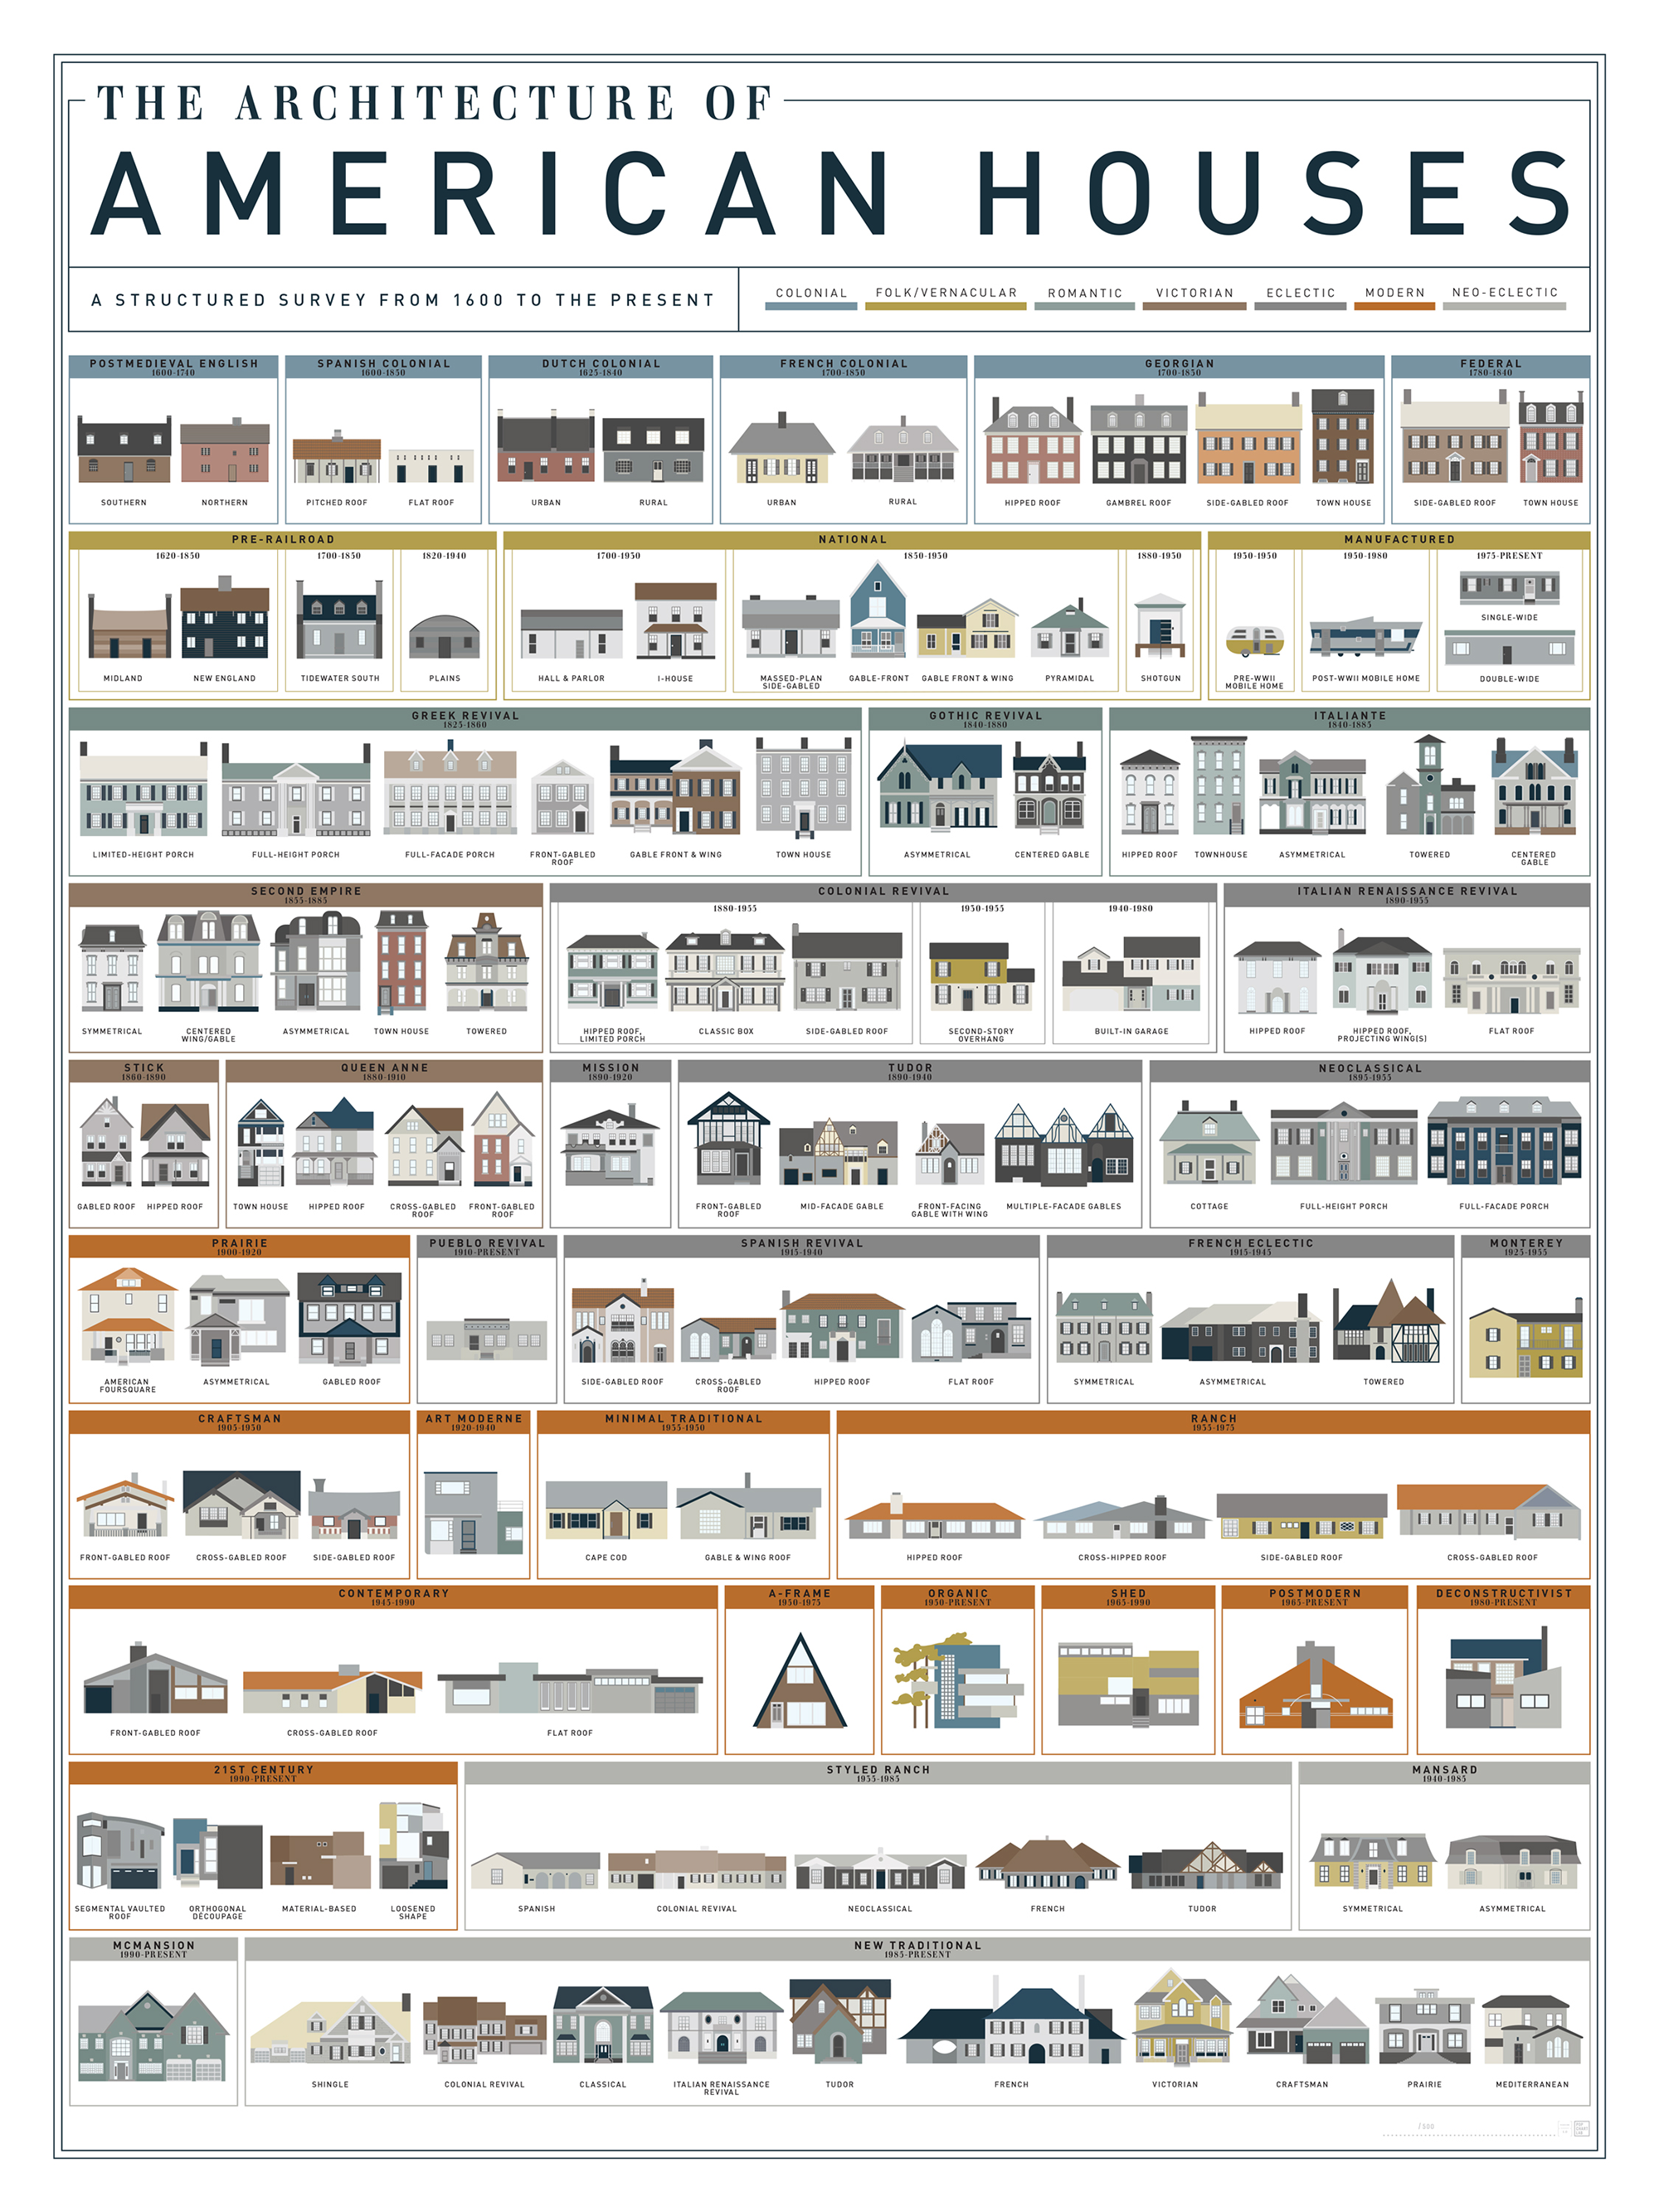 What style is that house visual guides to domestic architectural designs 99 invisible Home architecture types